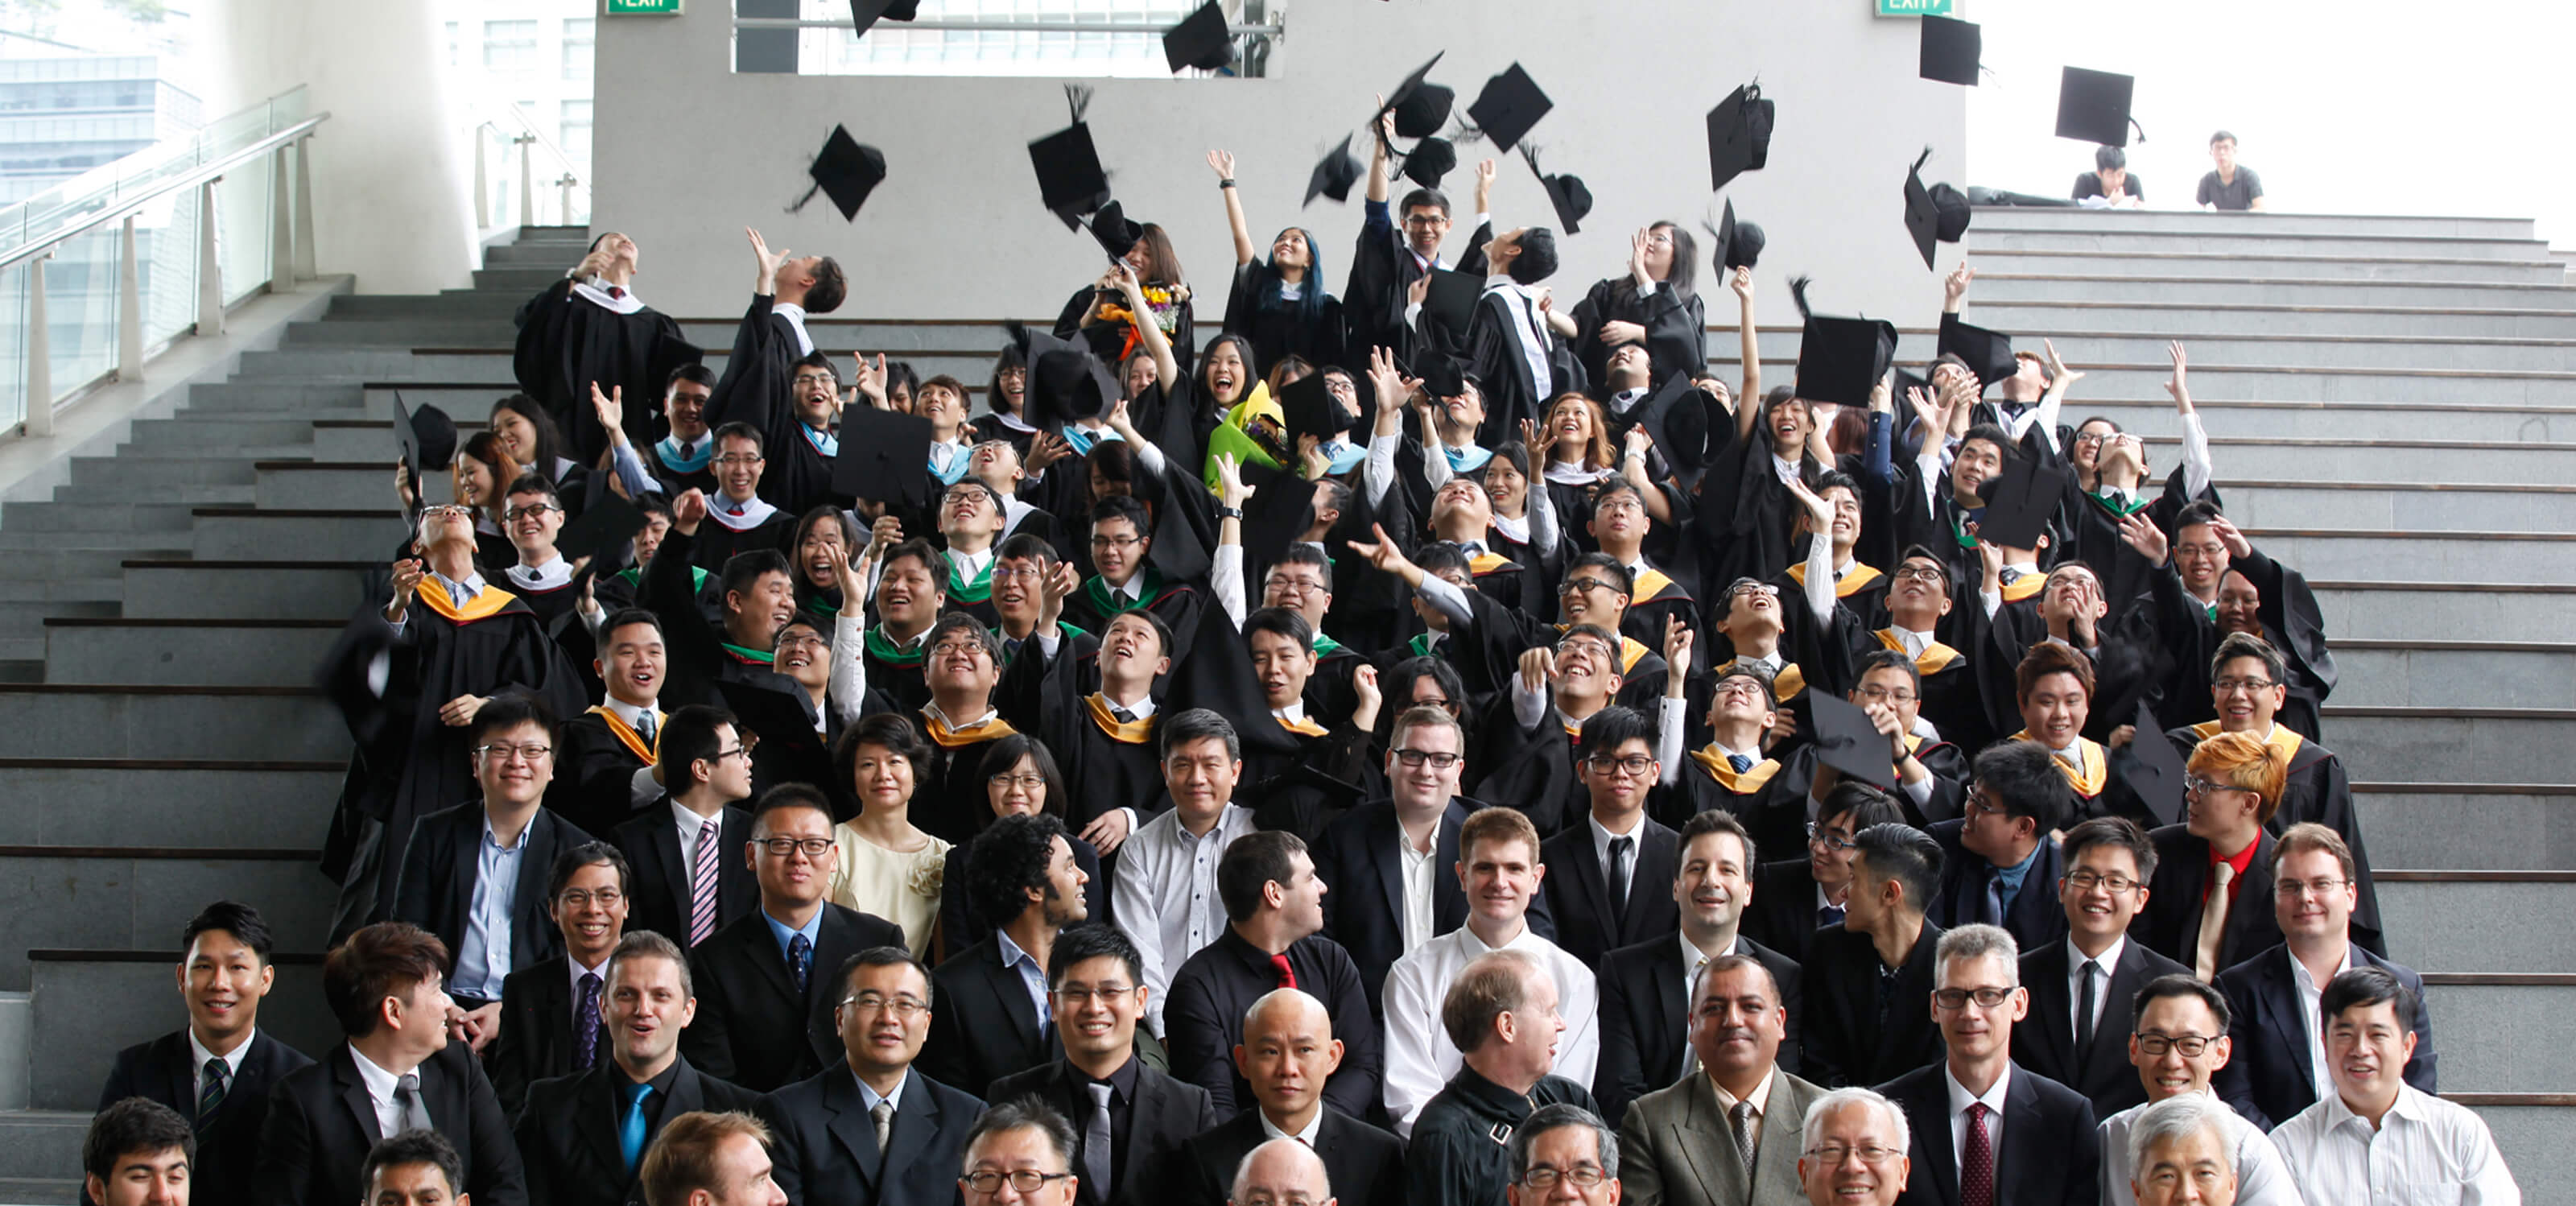 Dozens of newly graduated DigiPen alumni toss their caps in the air as faculty sits below them in bleacher seating